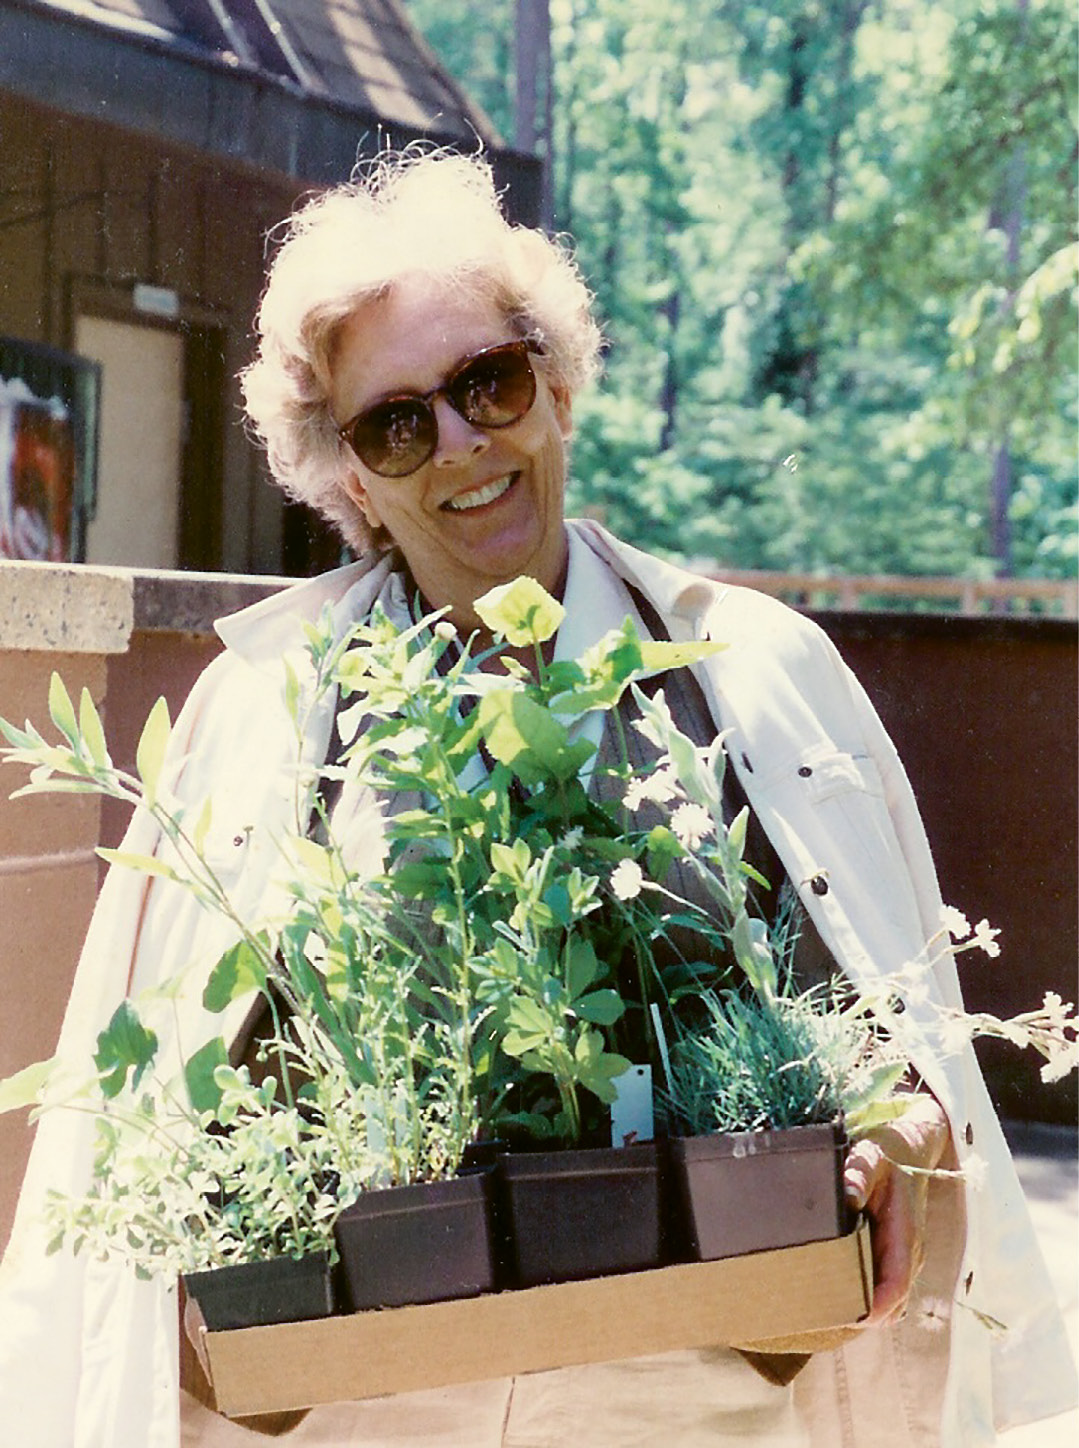 EVERGREEN THUMB: Patti at the Charleston Garden Festival, which predated Charleston Horticultural Society and its annual Plantasia event